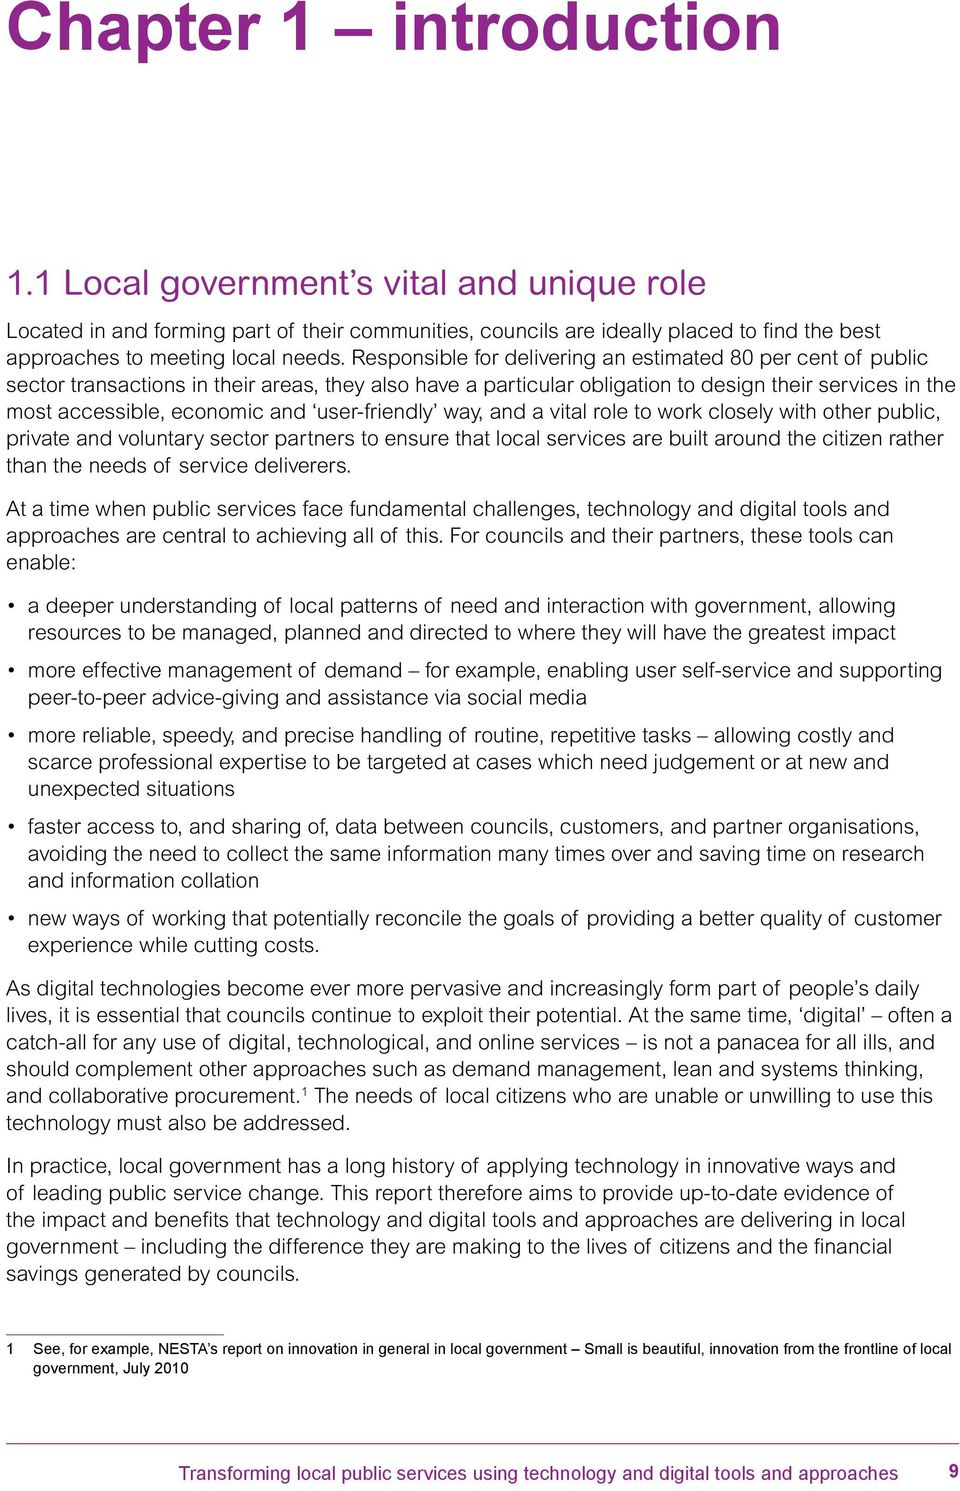 user-friendly way, and a vital role to work closely with other public, private and voluntary sector partners to ensure that local services are built around the citizen rather than the needs of